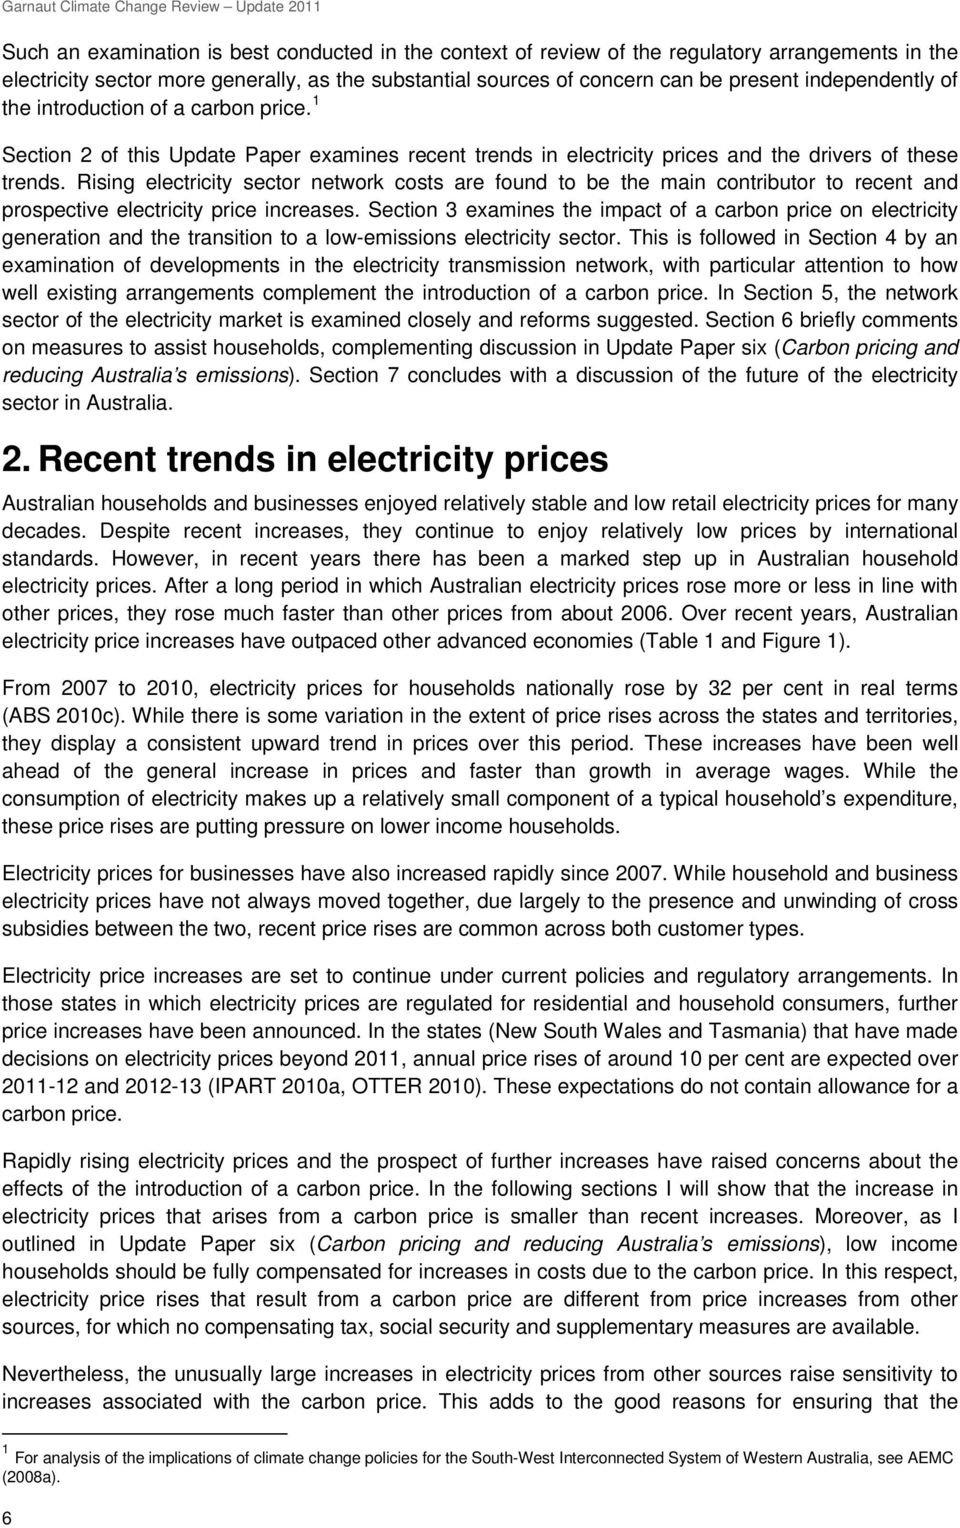 Rising electricity sector network costs are found to be the main contributor to recent and prospective electricity price increases.